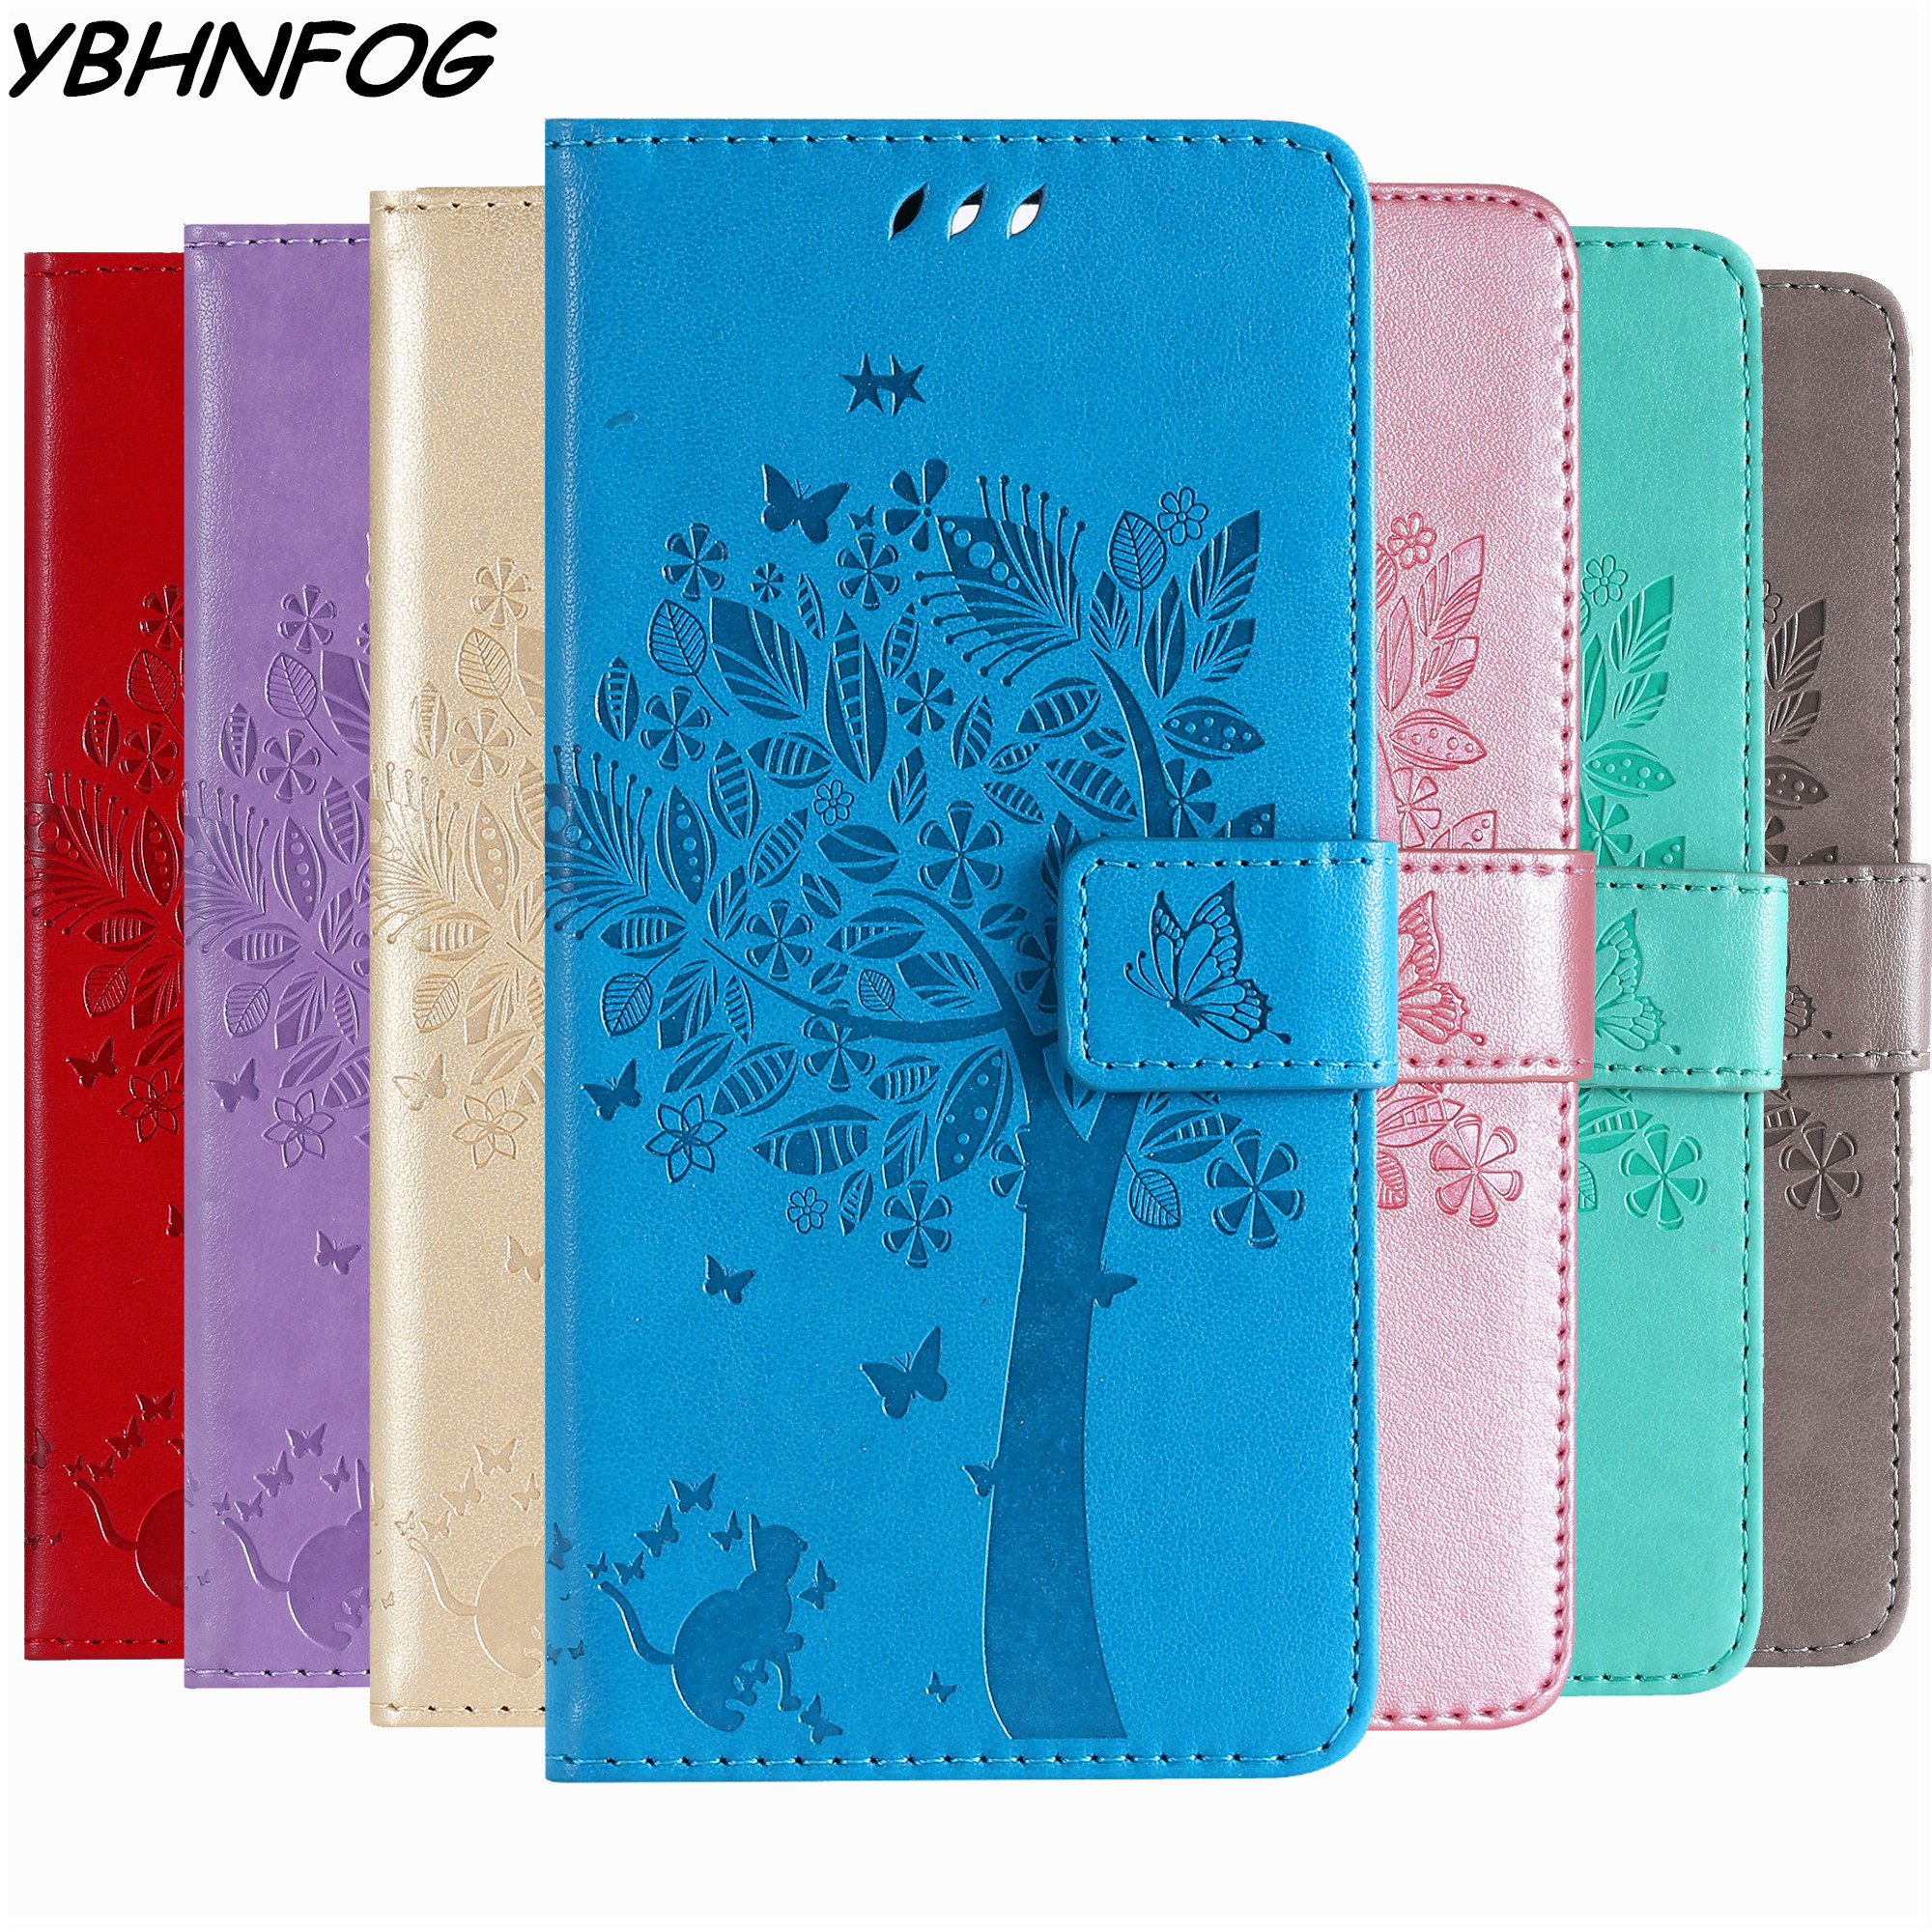 Luxury Retro Flip Case For Lenovo K5 Plus A6020 A2020 Vibe C PU Leather Wallet Stand Bag Cover For Lenovo ZUK Z2 Pro Case Coque